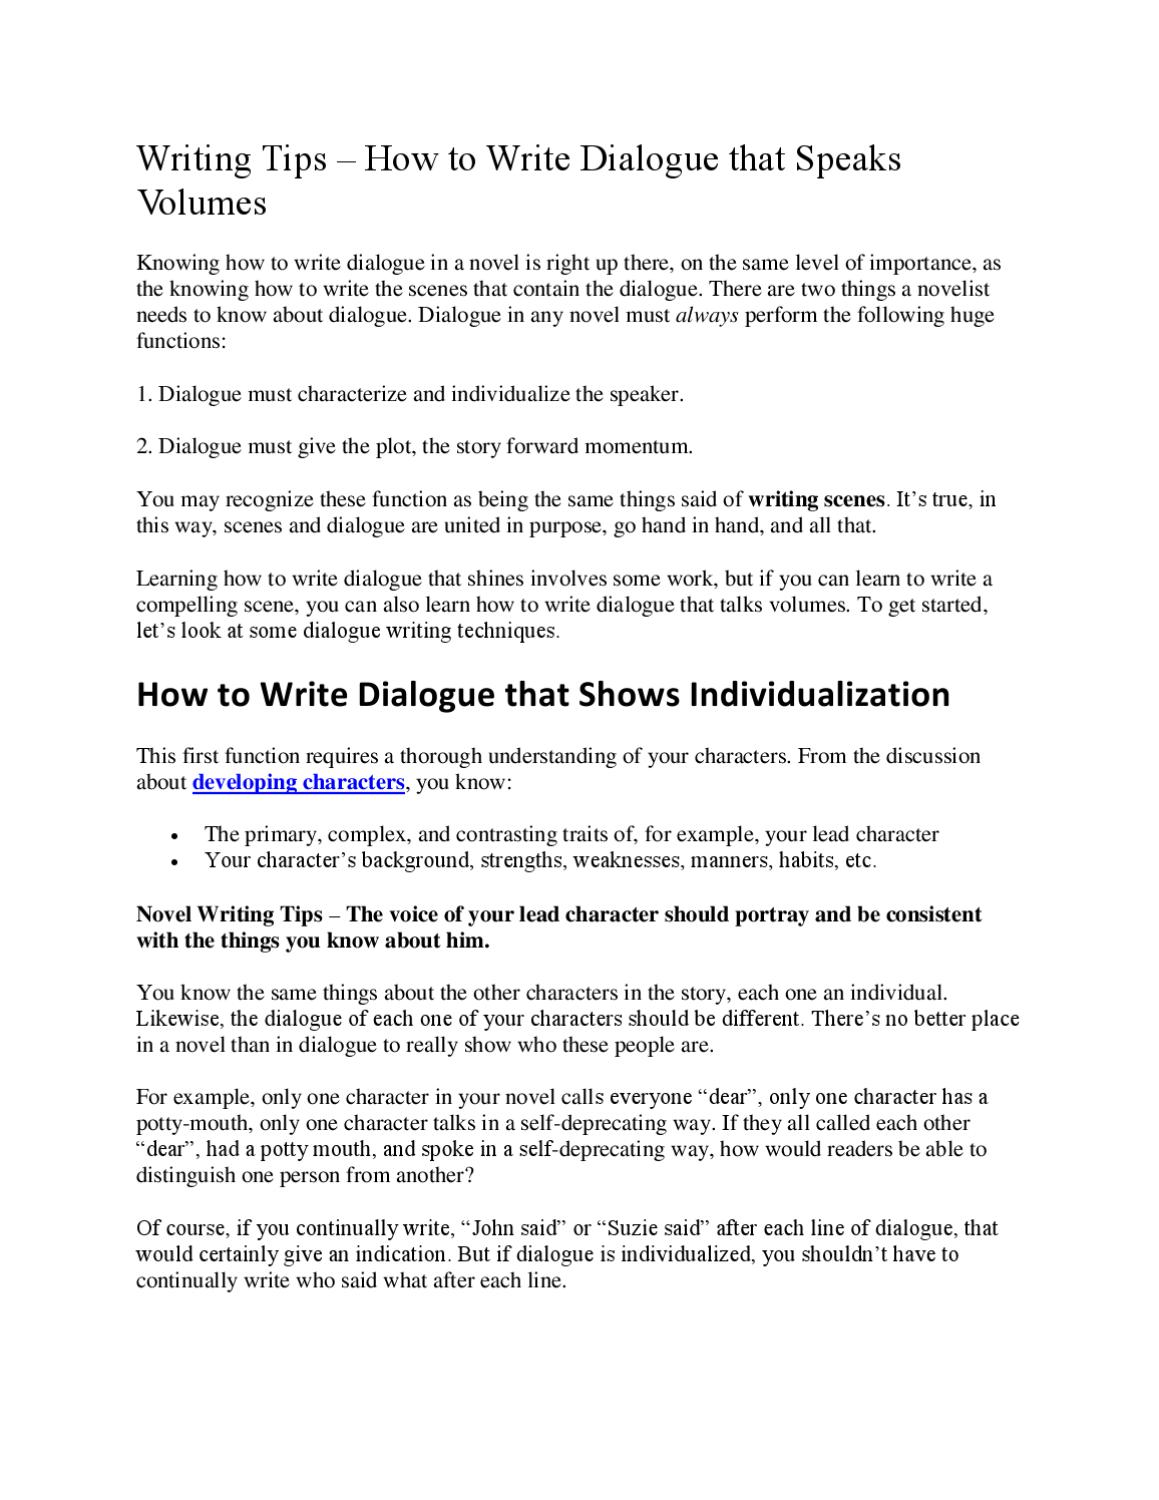 Writing Tips - How to Write Dialogue that Speaks Volumes by